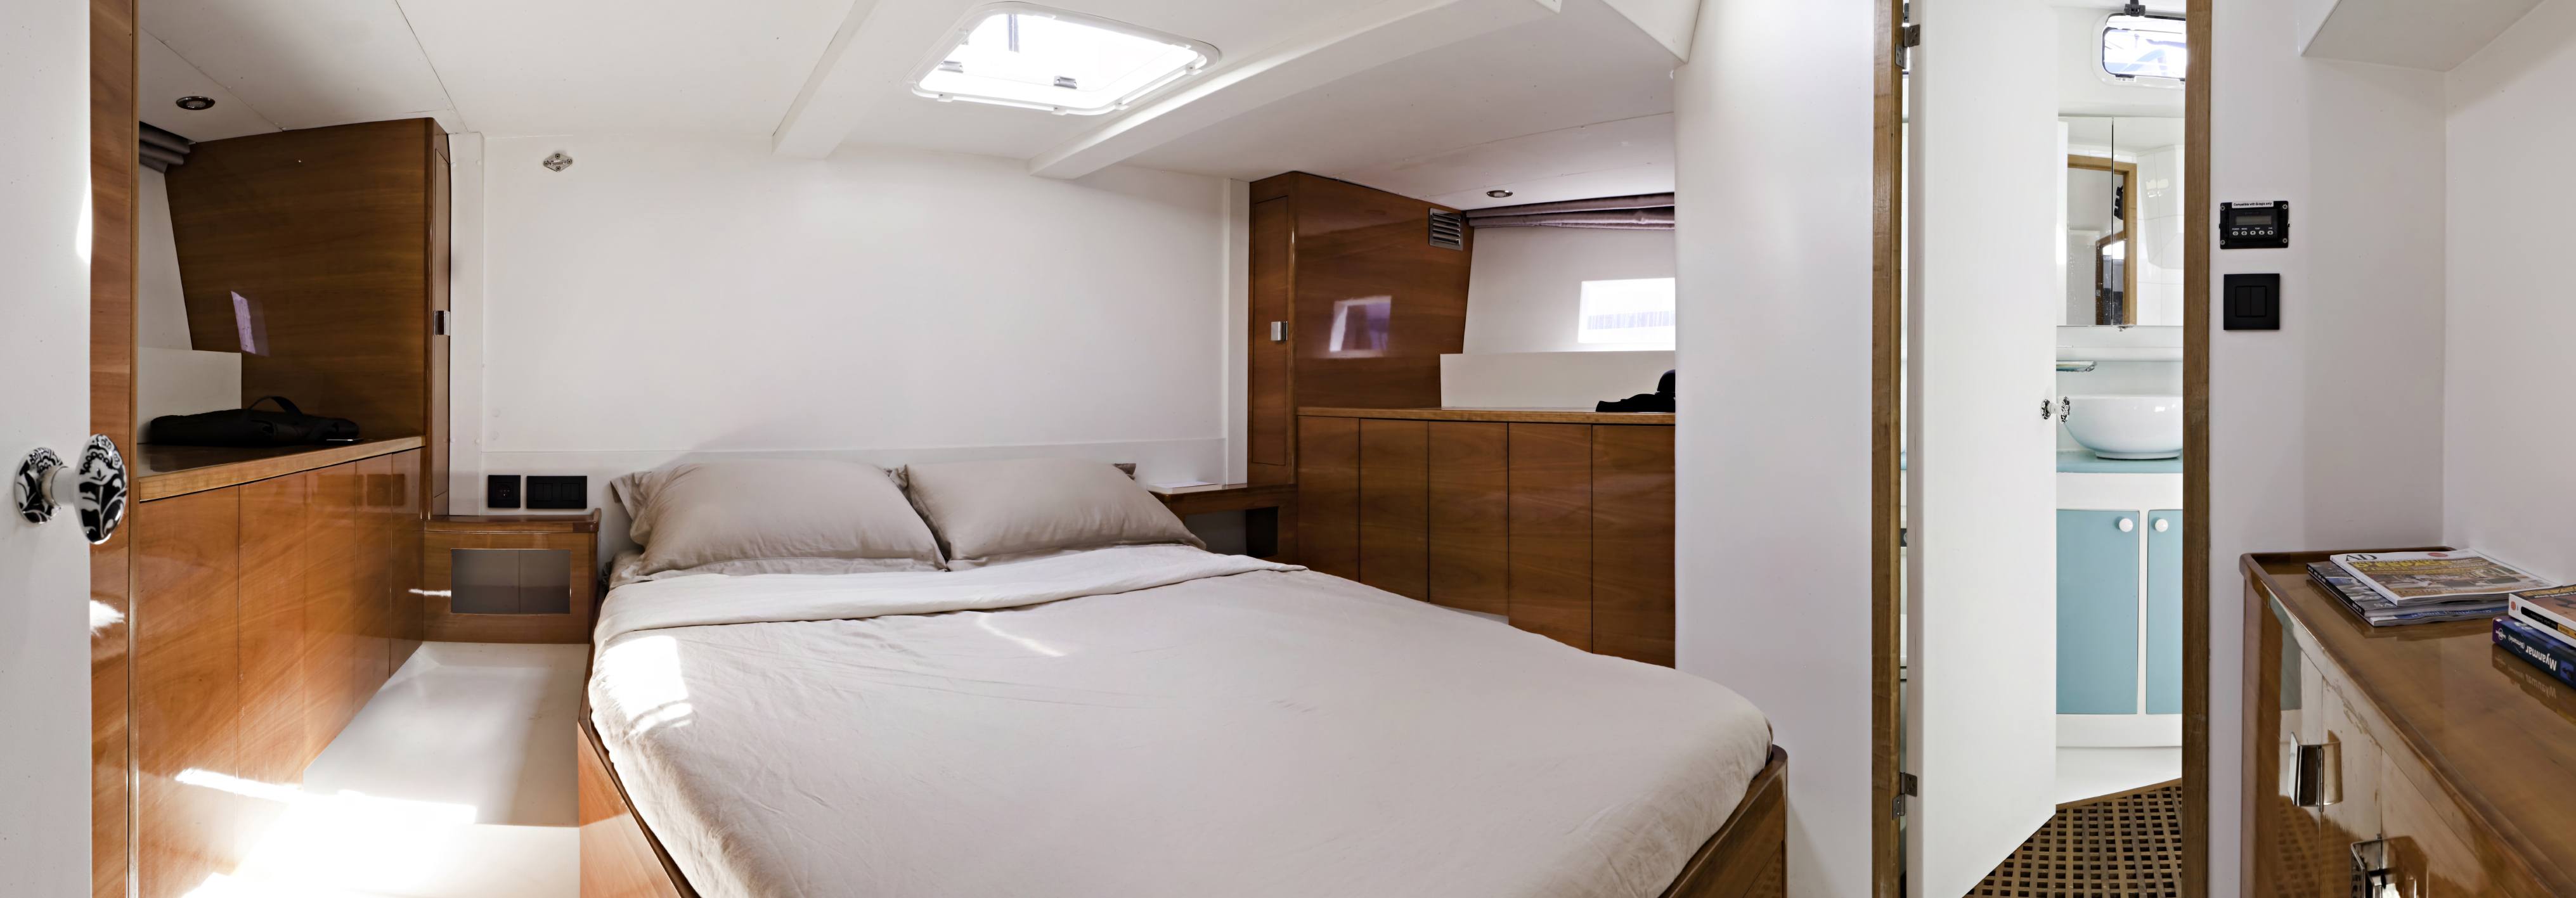 Large aft master suite